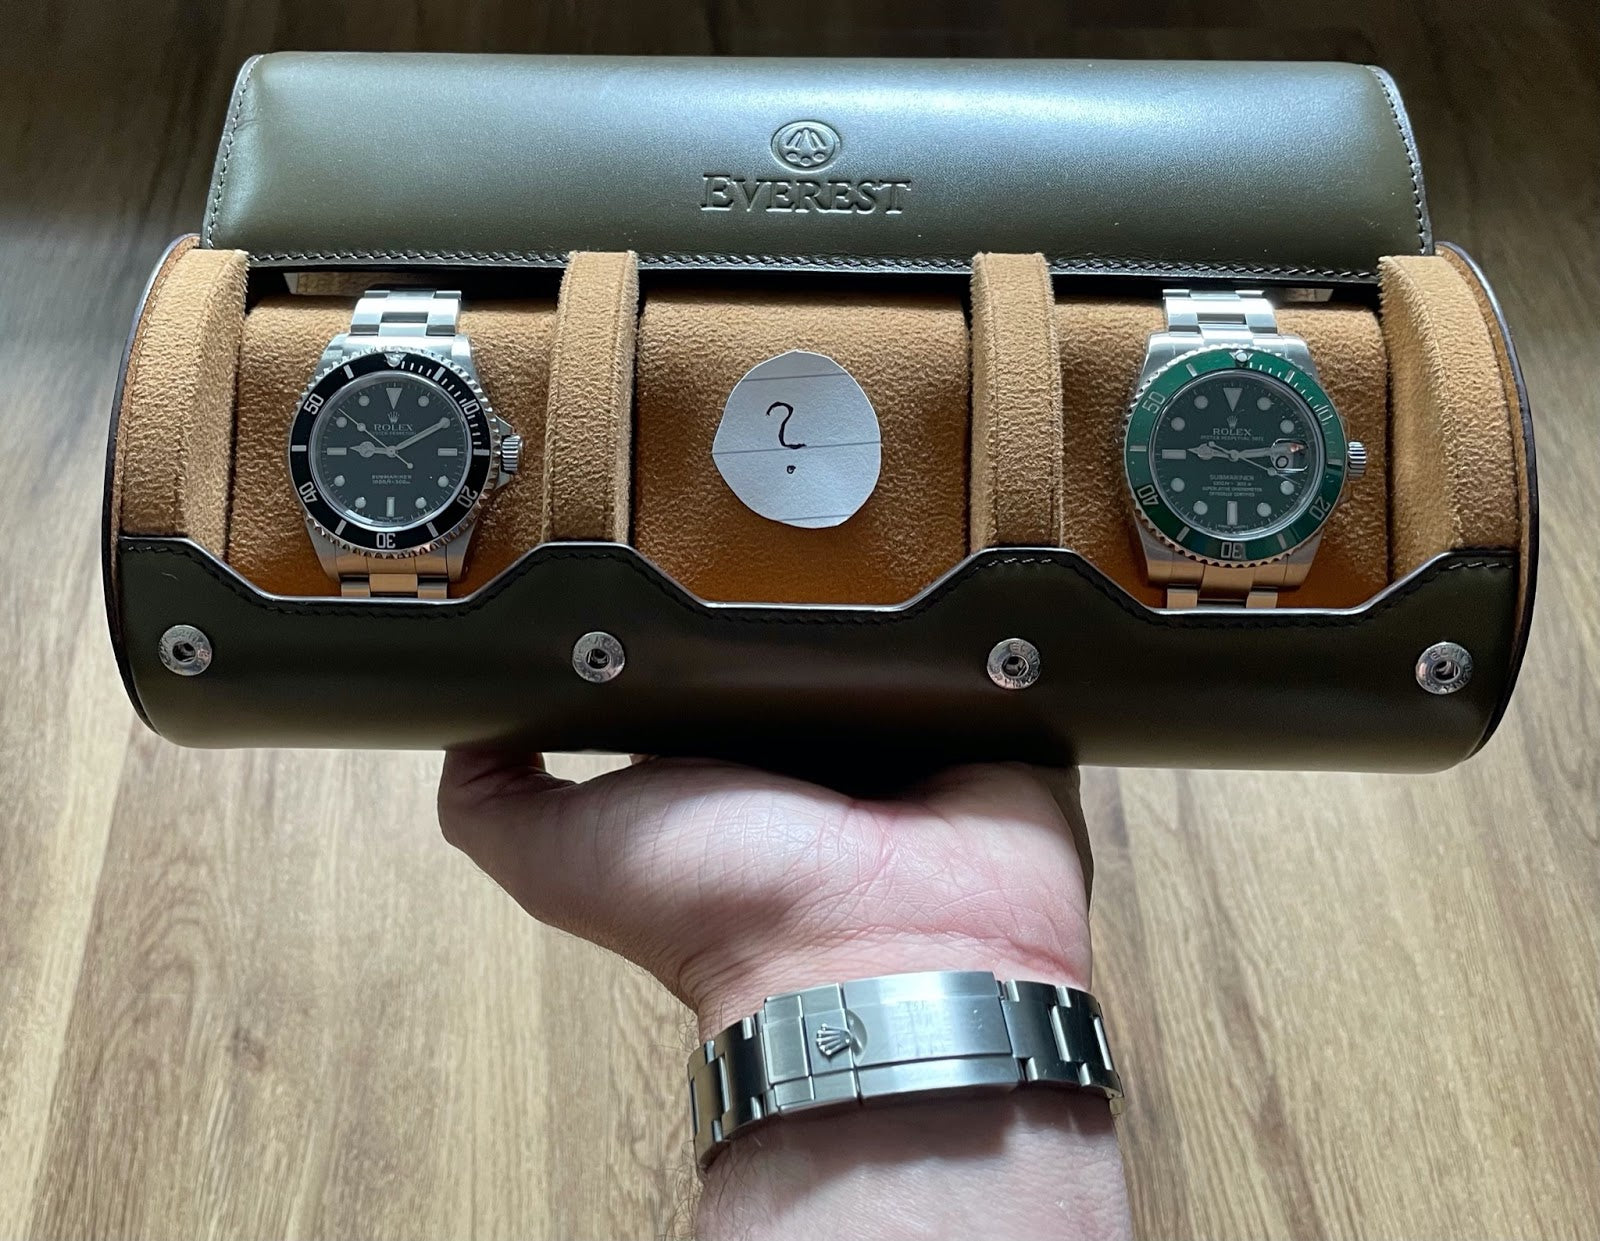 everest watch roll with rolex watches inside